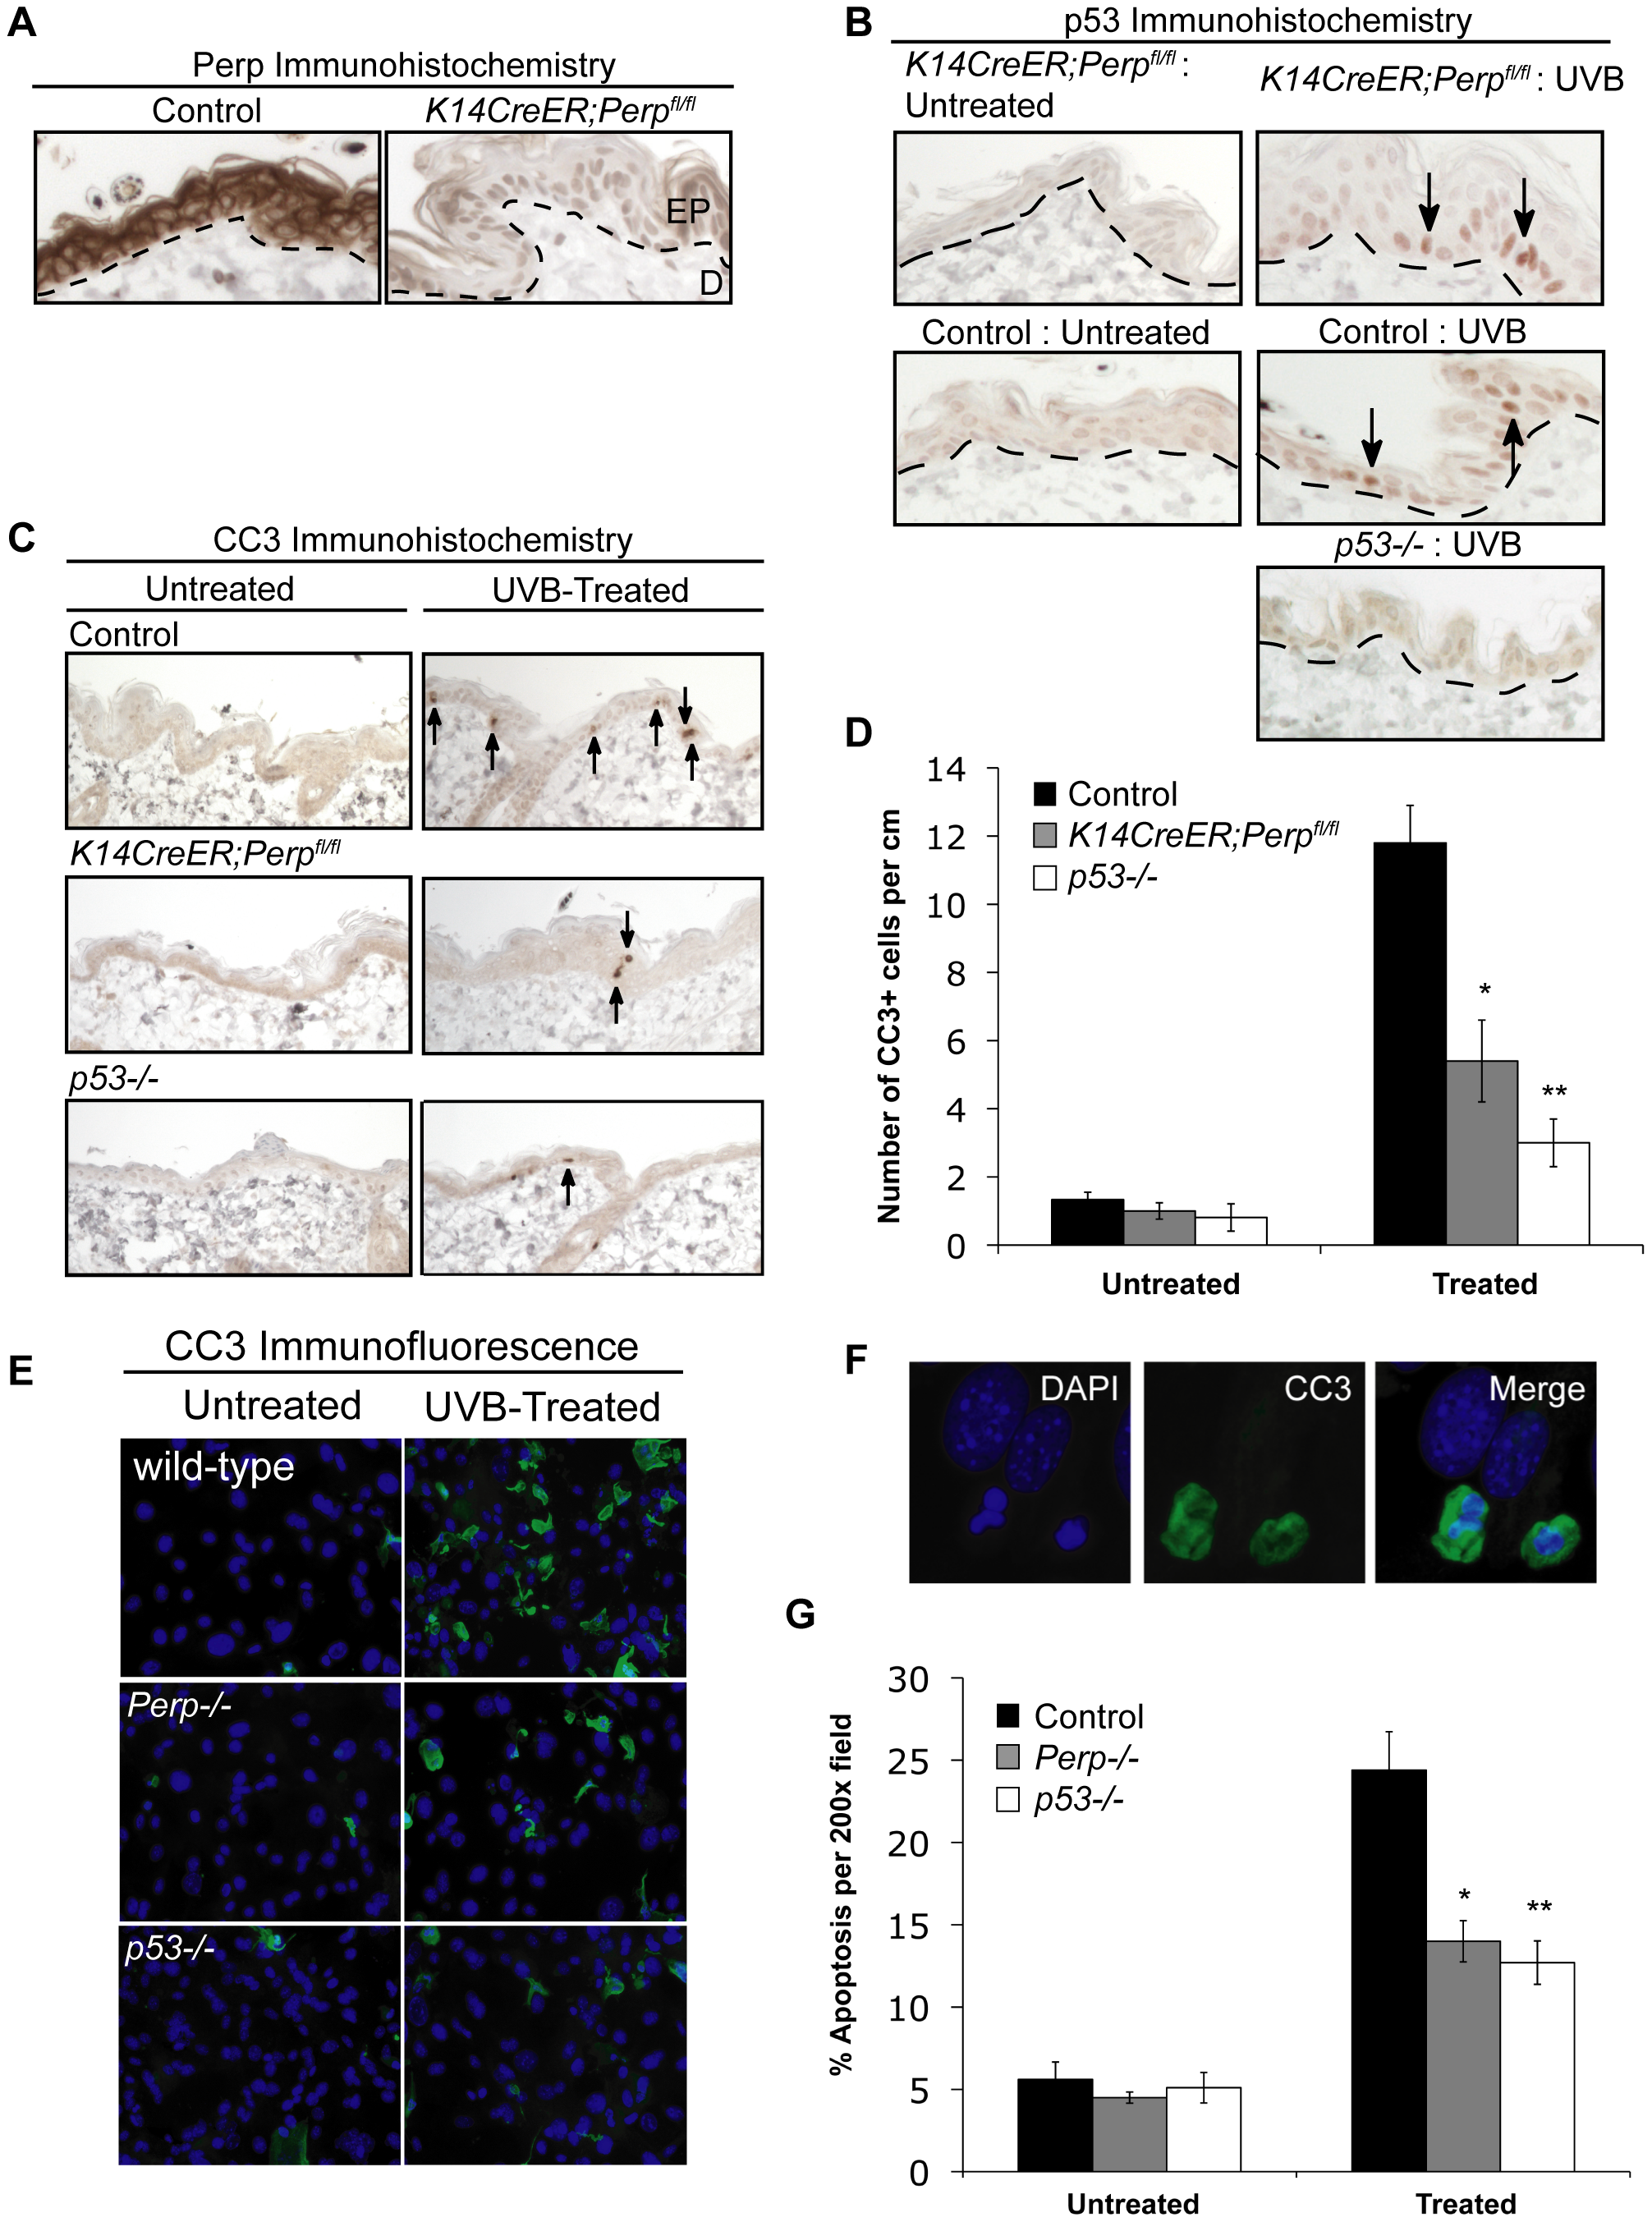 Perp loss compromises UVB-induced apoptosis <i>in vivo</i> and <i>in vitro</i>.